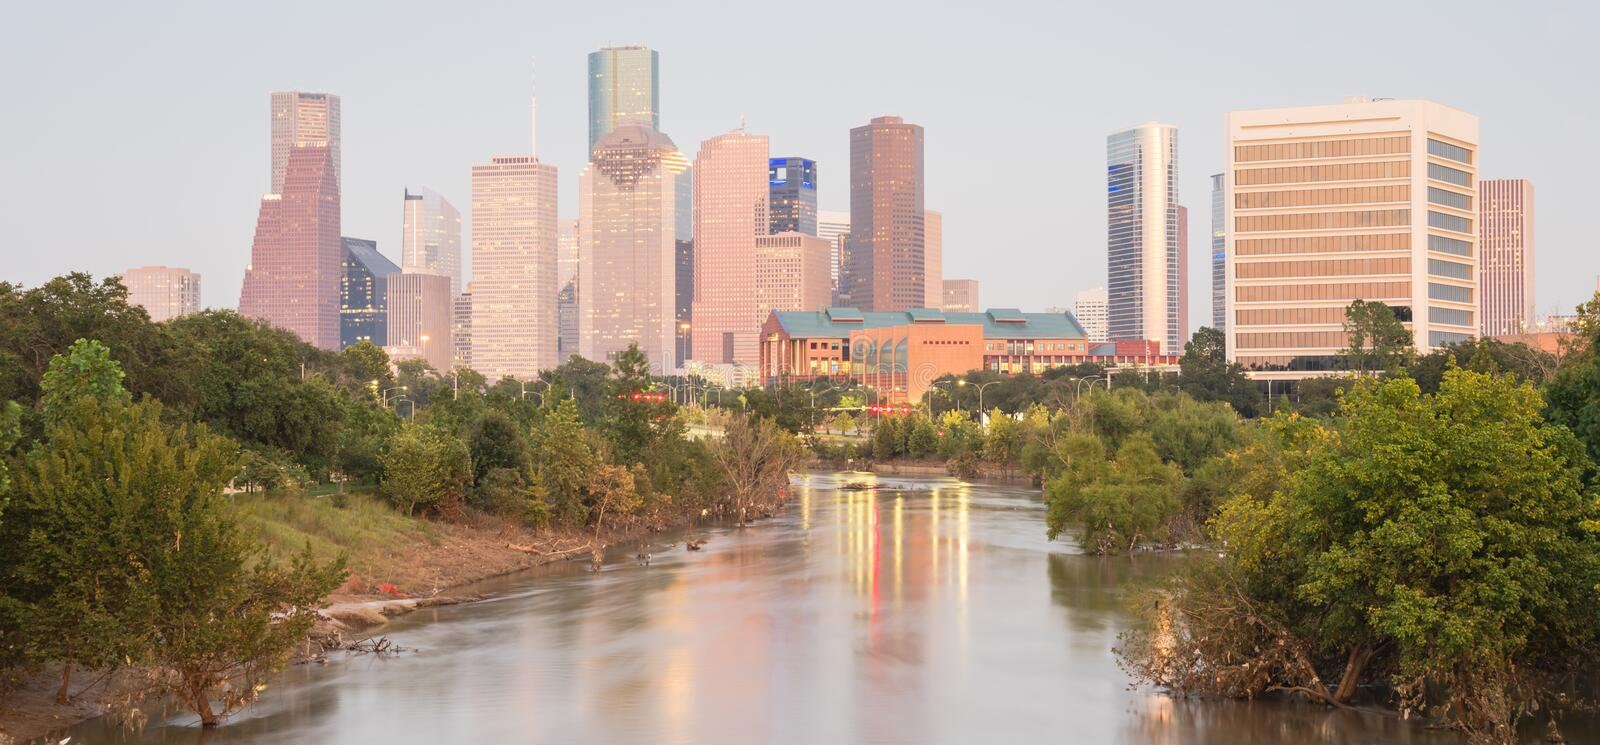 Houston Downtown Bayou River Sunset fotografia de stock